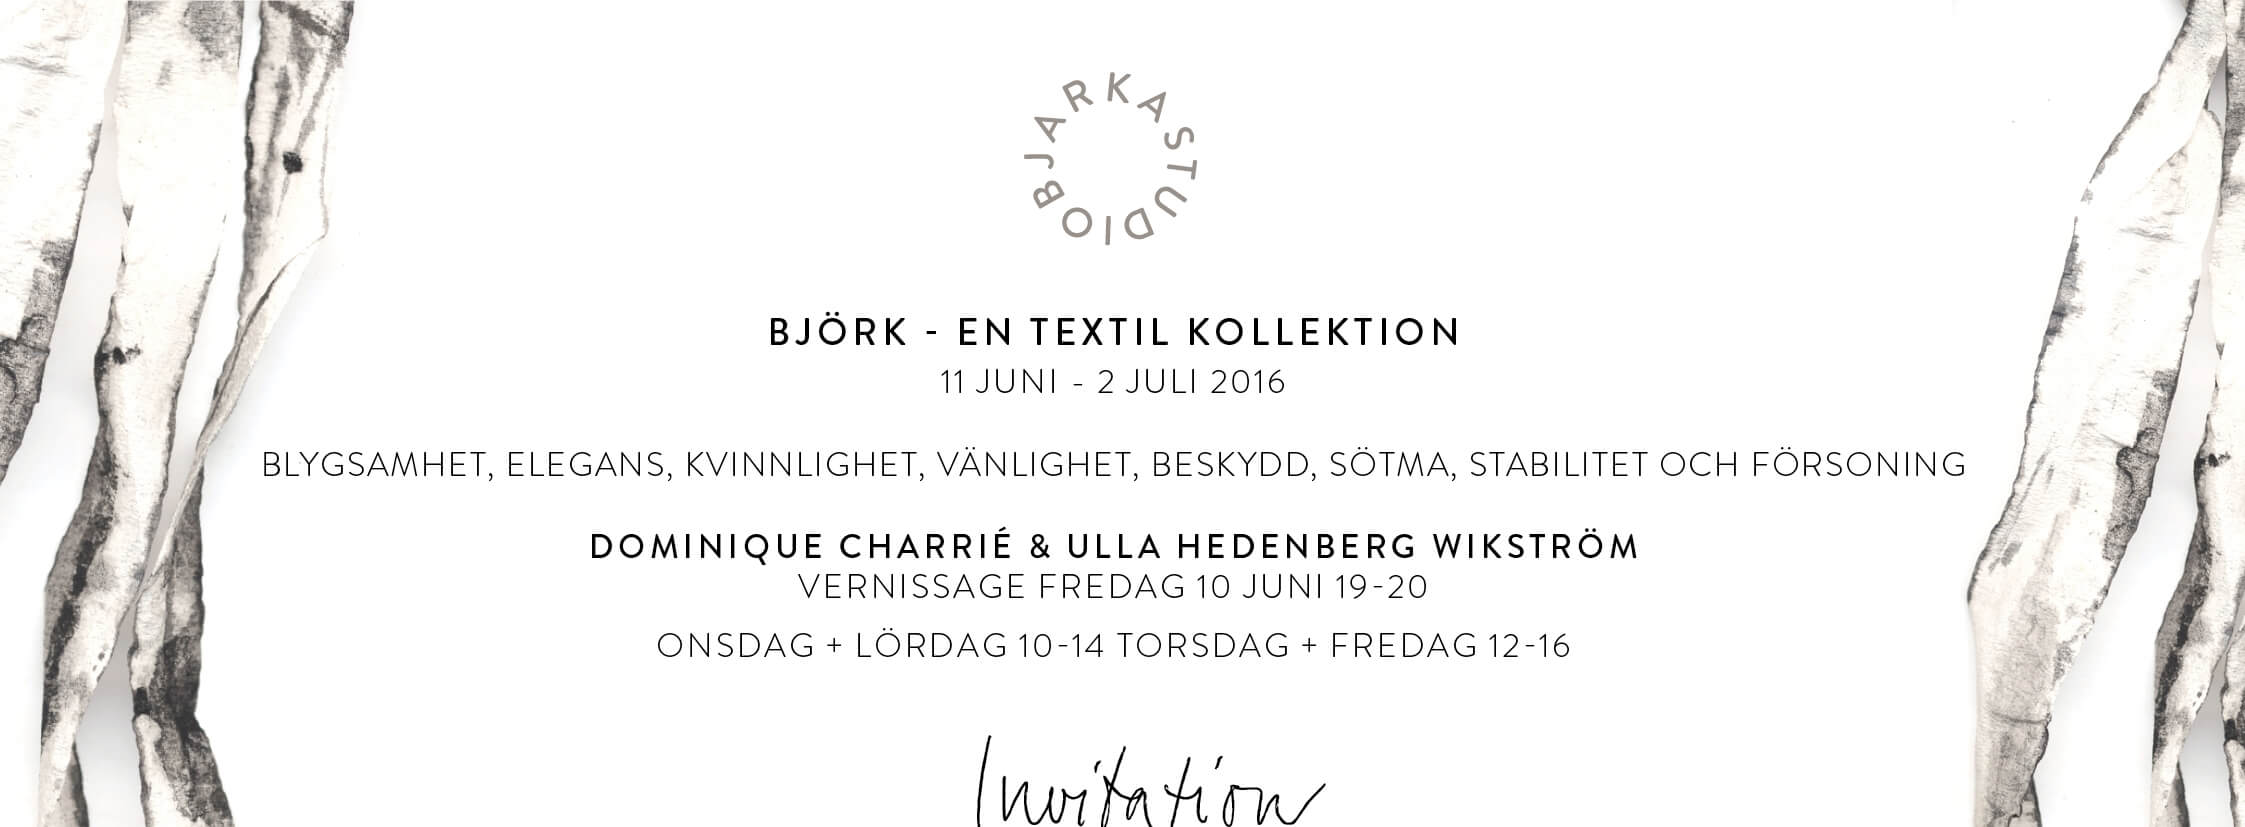 Exhibition @ Artspace Varberg. June 10- July 2nd